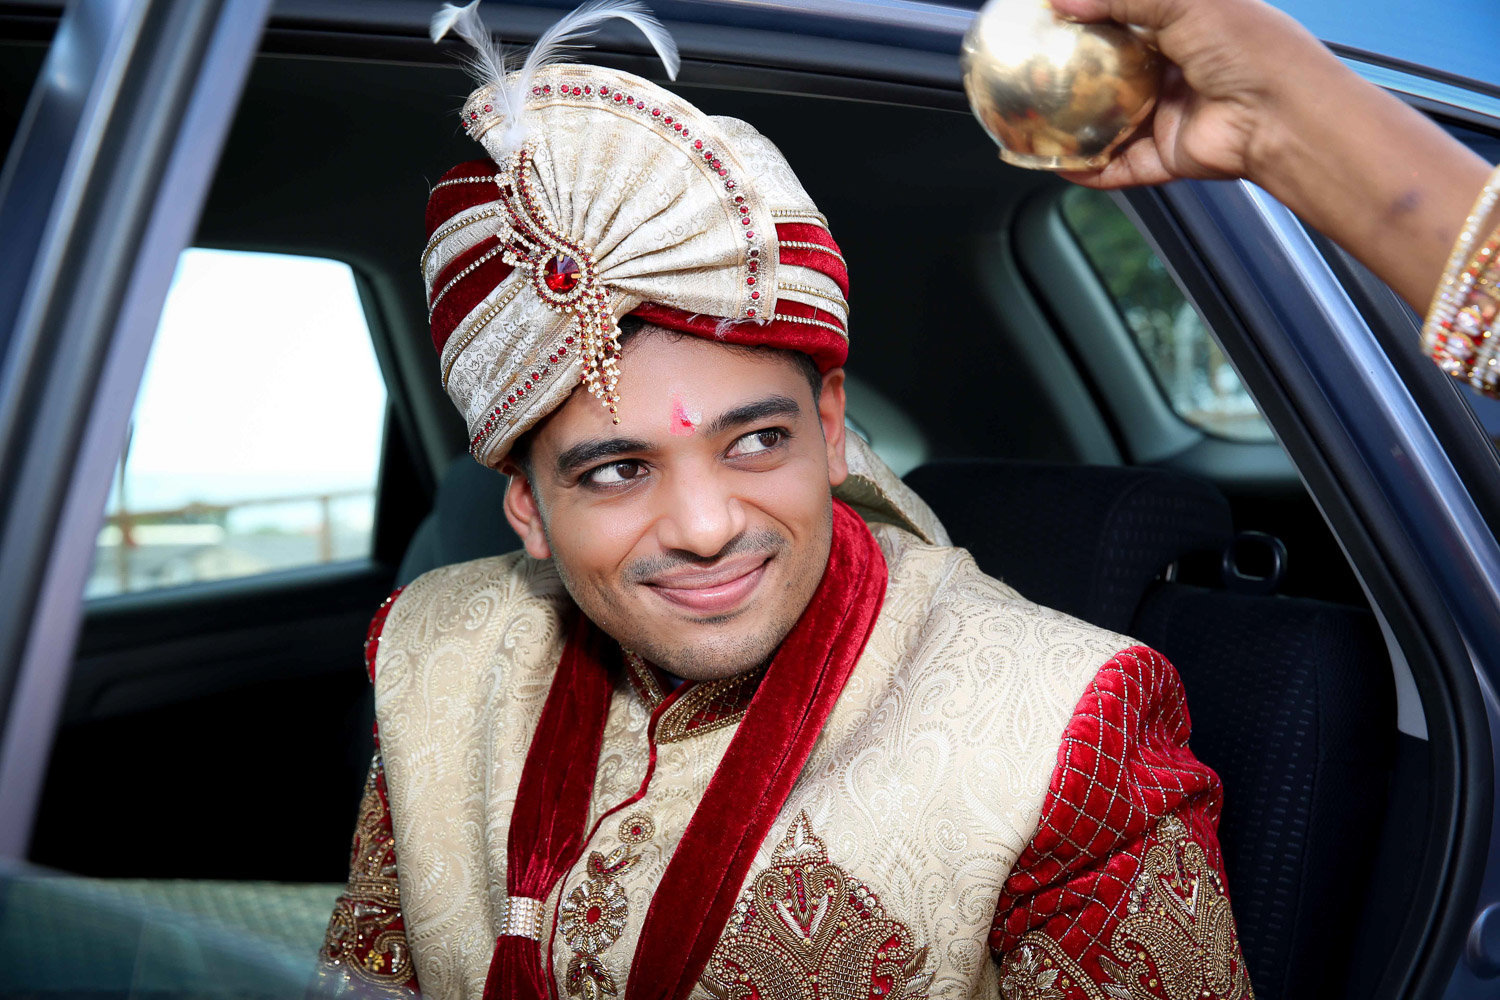 Indian groom receives blessing while coming out of car. Photo by Ross Photography, Trinidad, W.I..